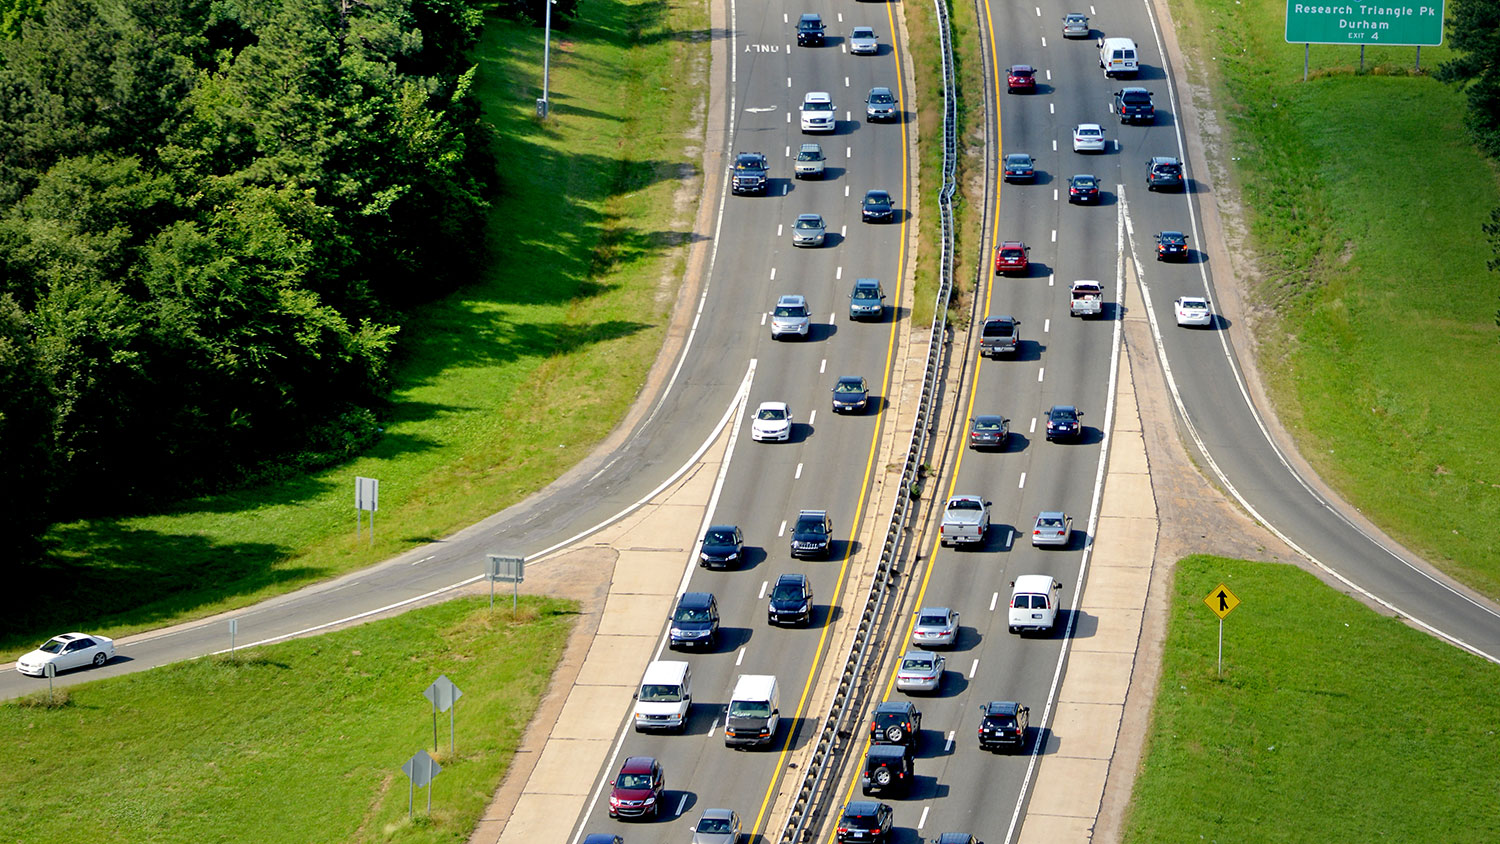 aerial view of highway traffic